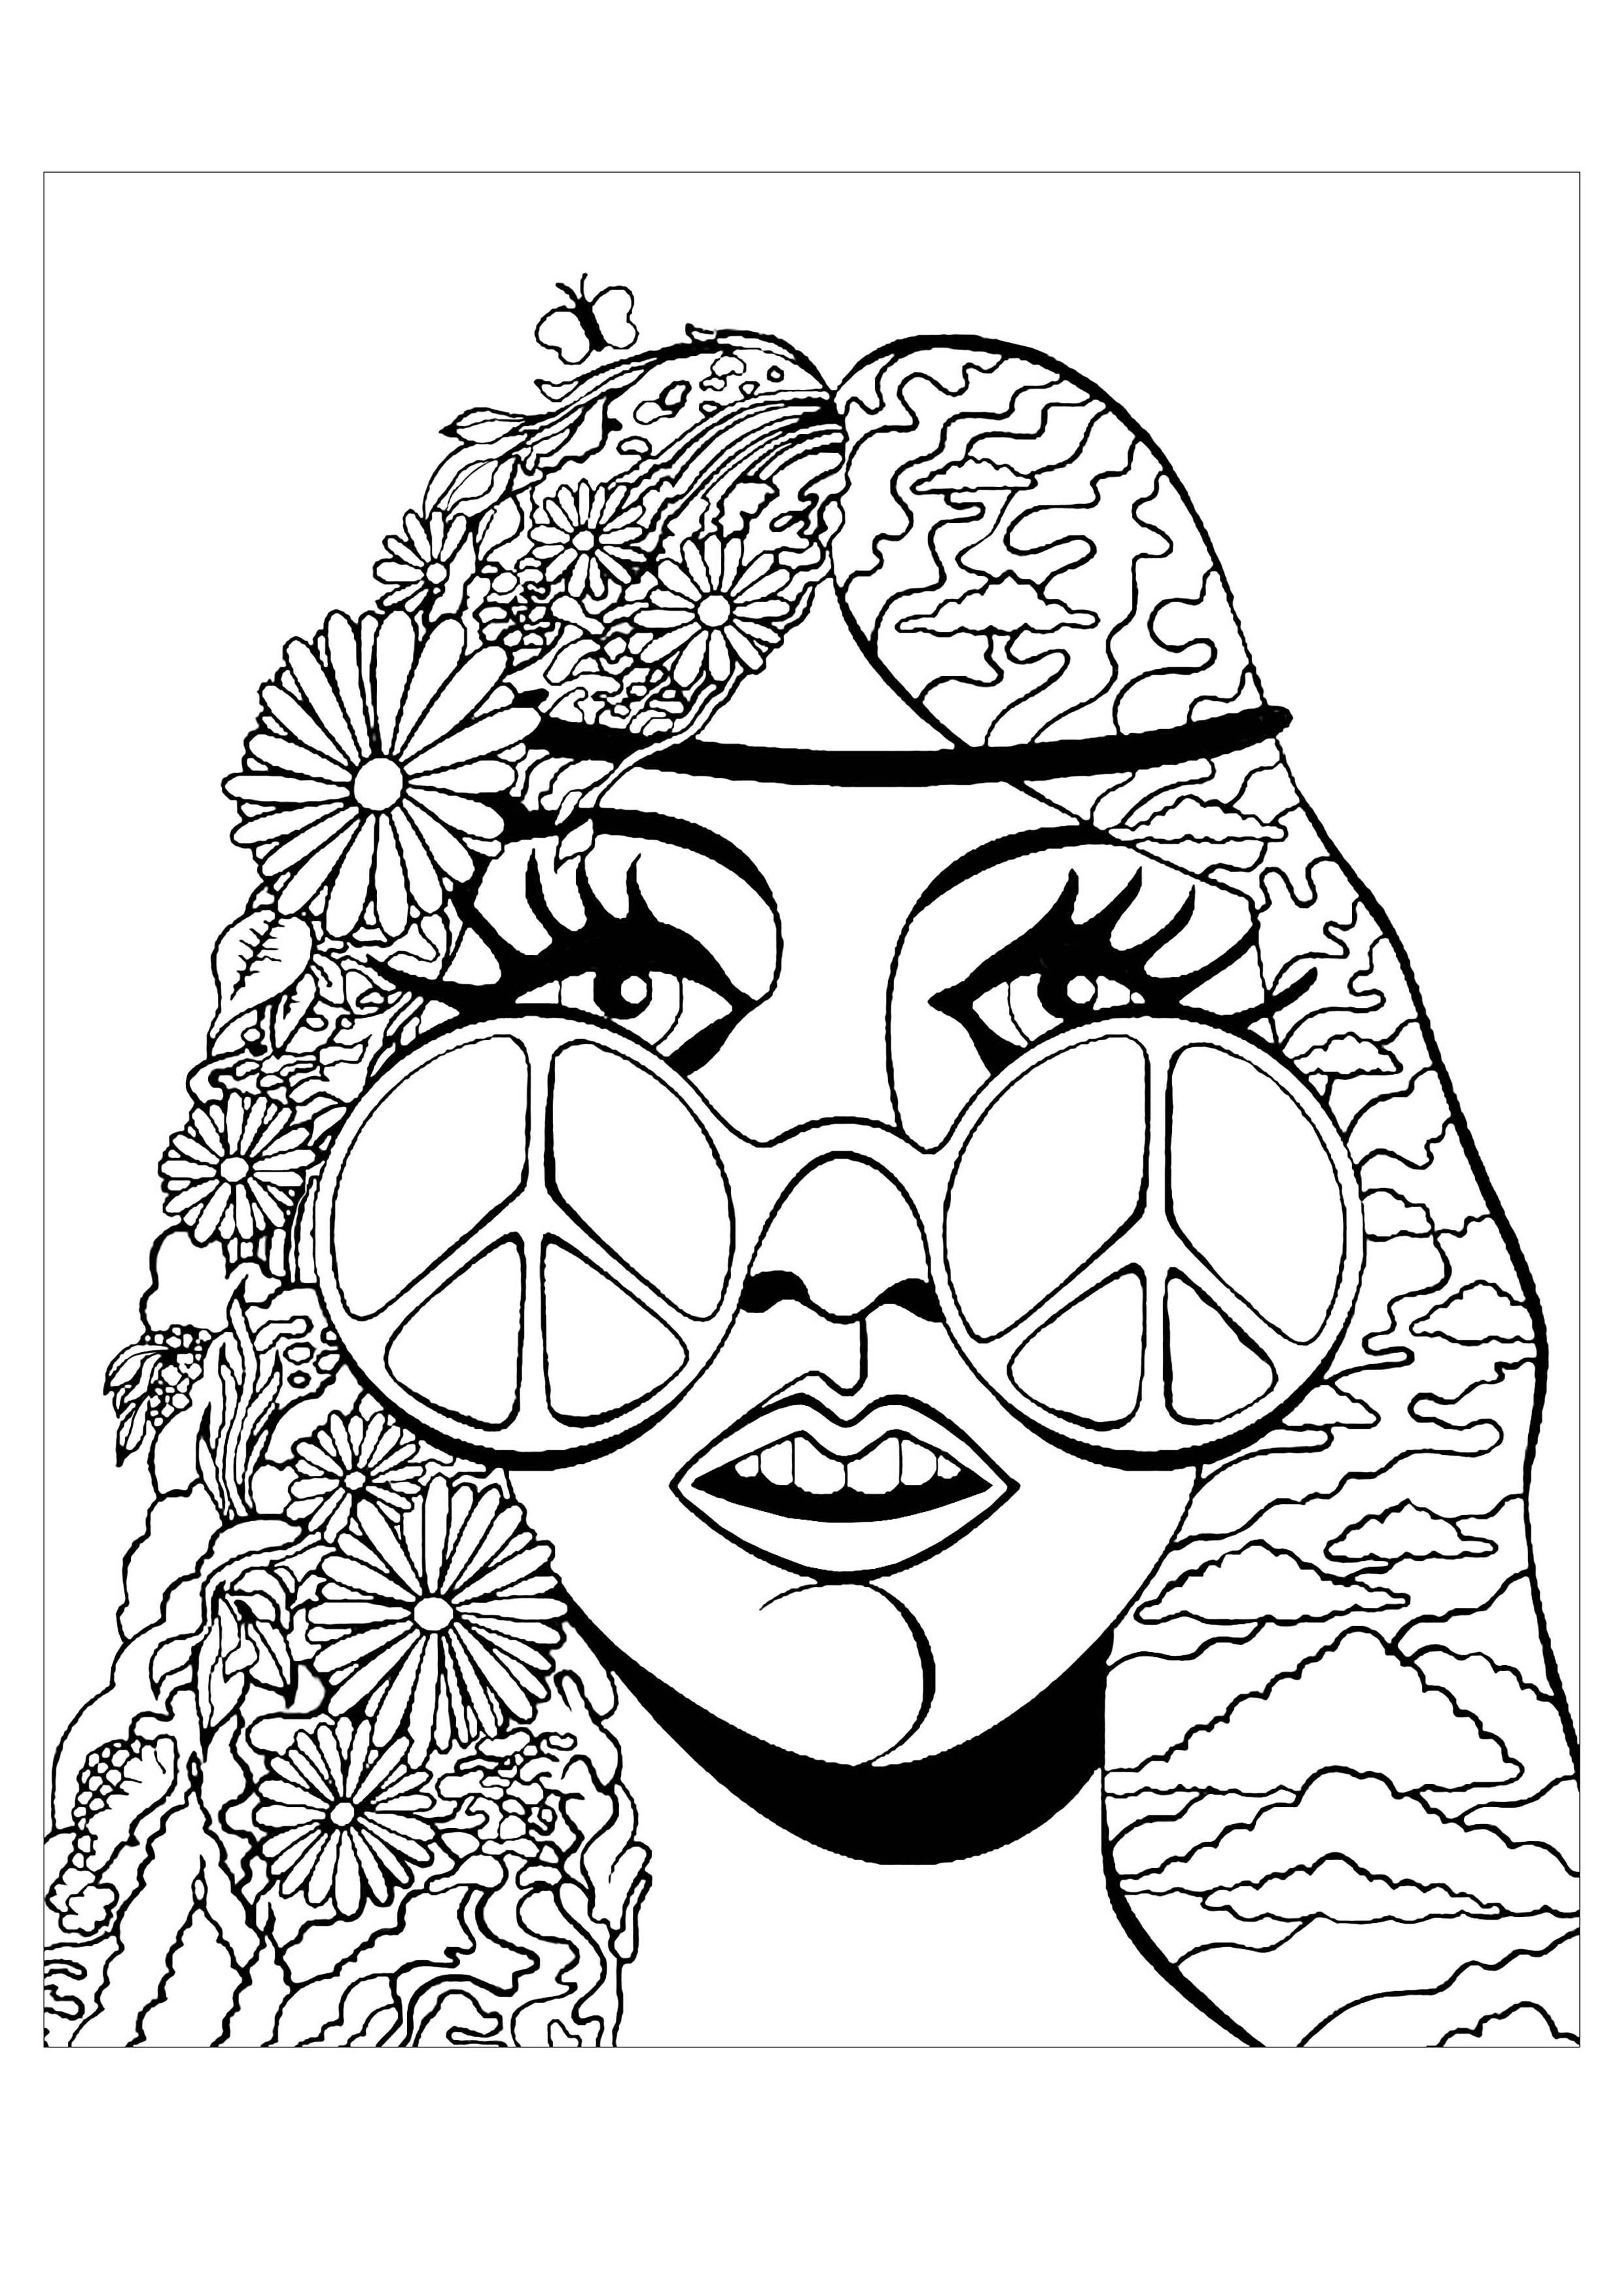 trippy coloring page trippy coloring pages psychedelic coloring pages beautiful trippy page coloring